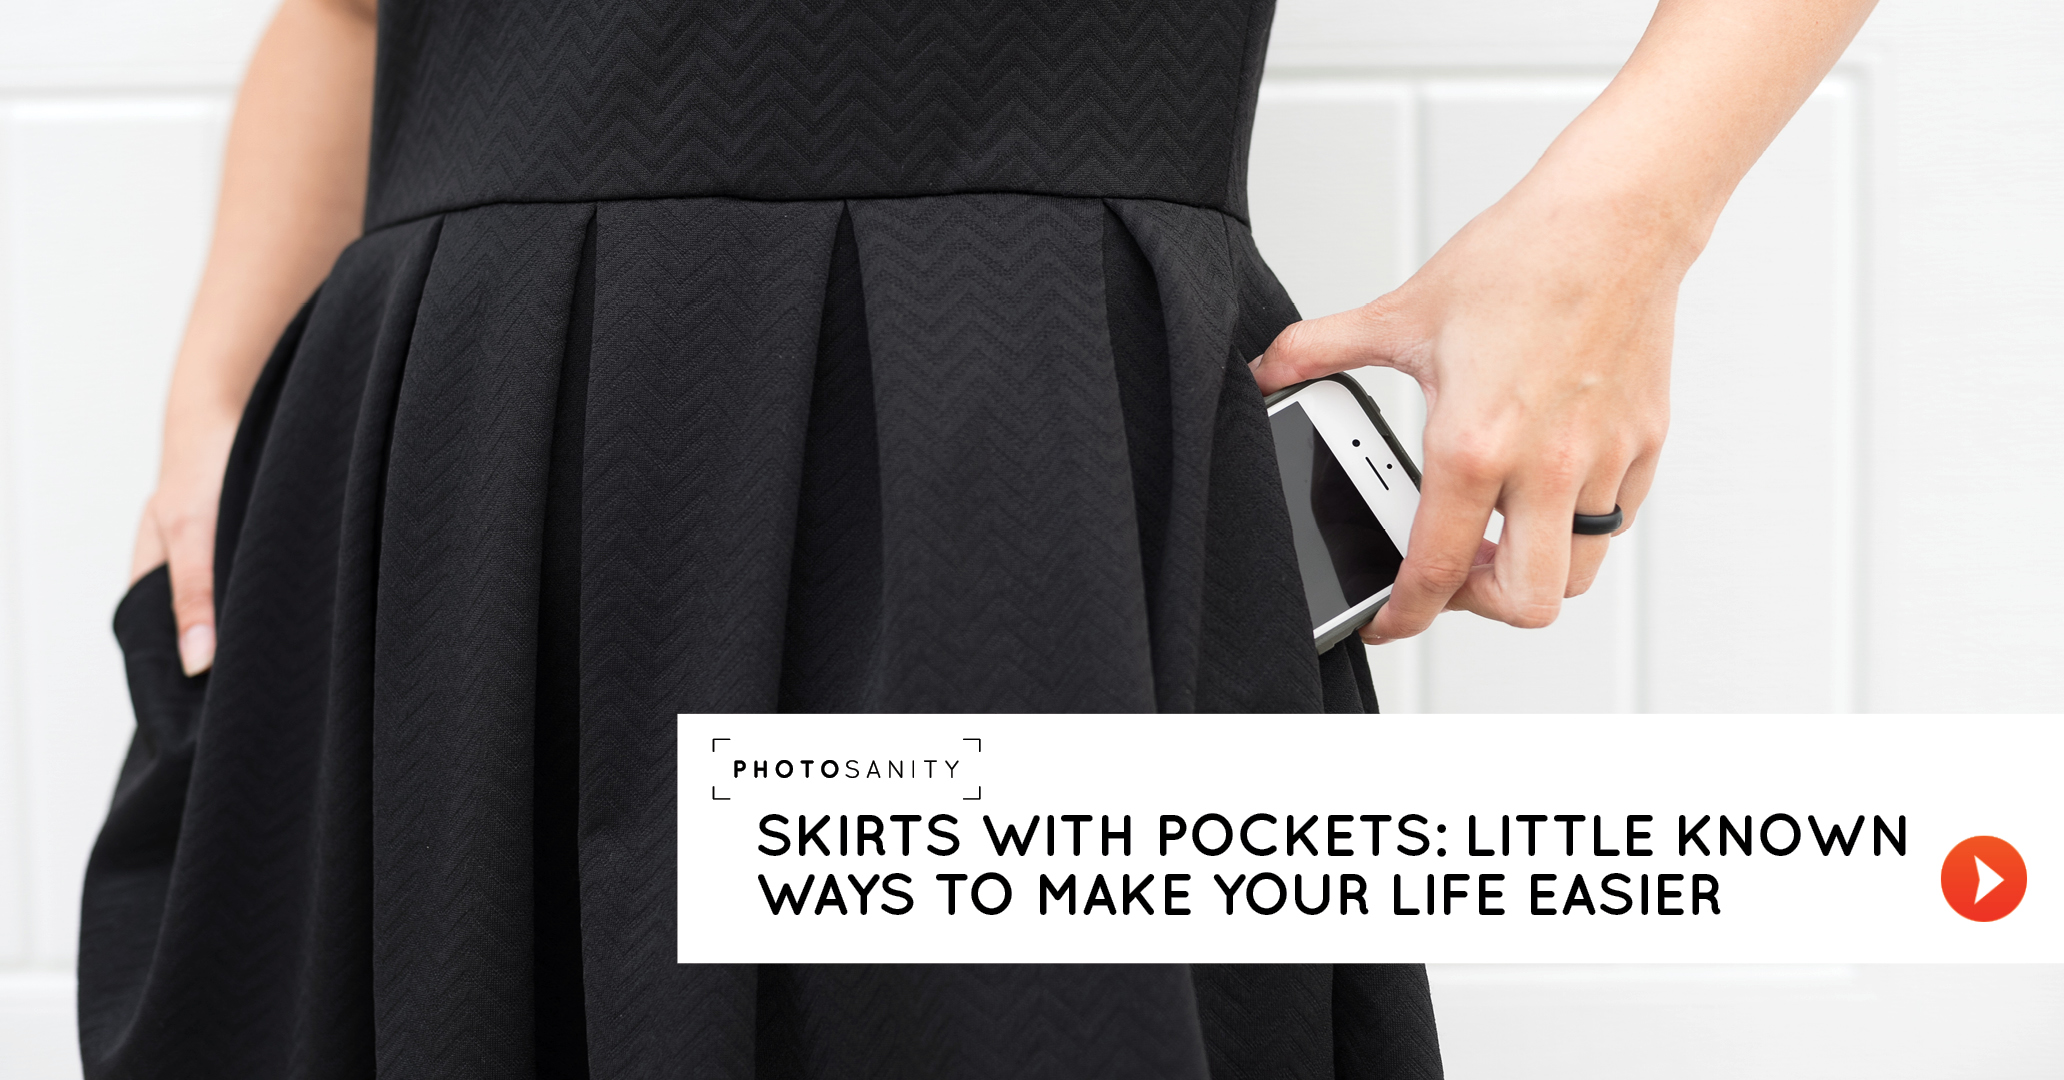 Skirts with pockets: little known ways to make your life easier